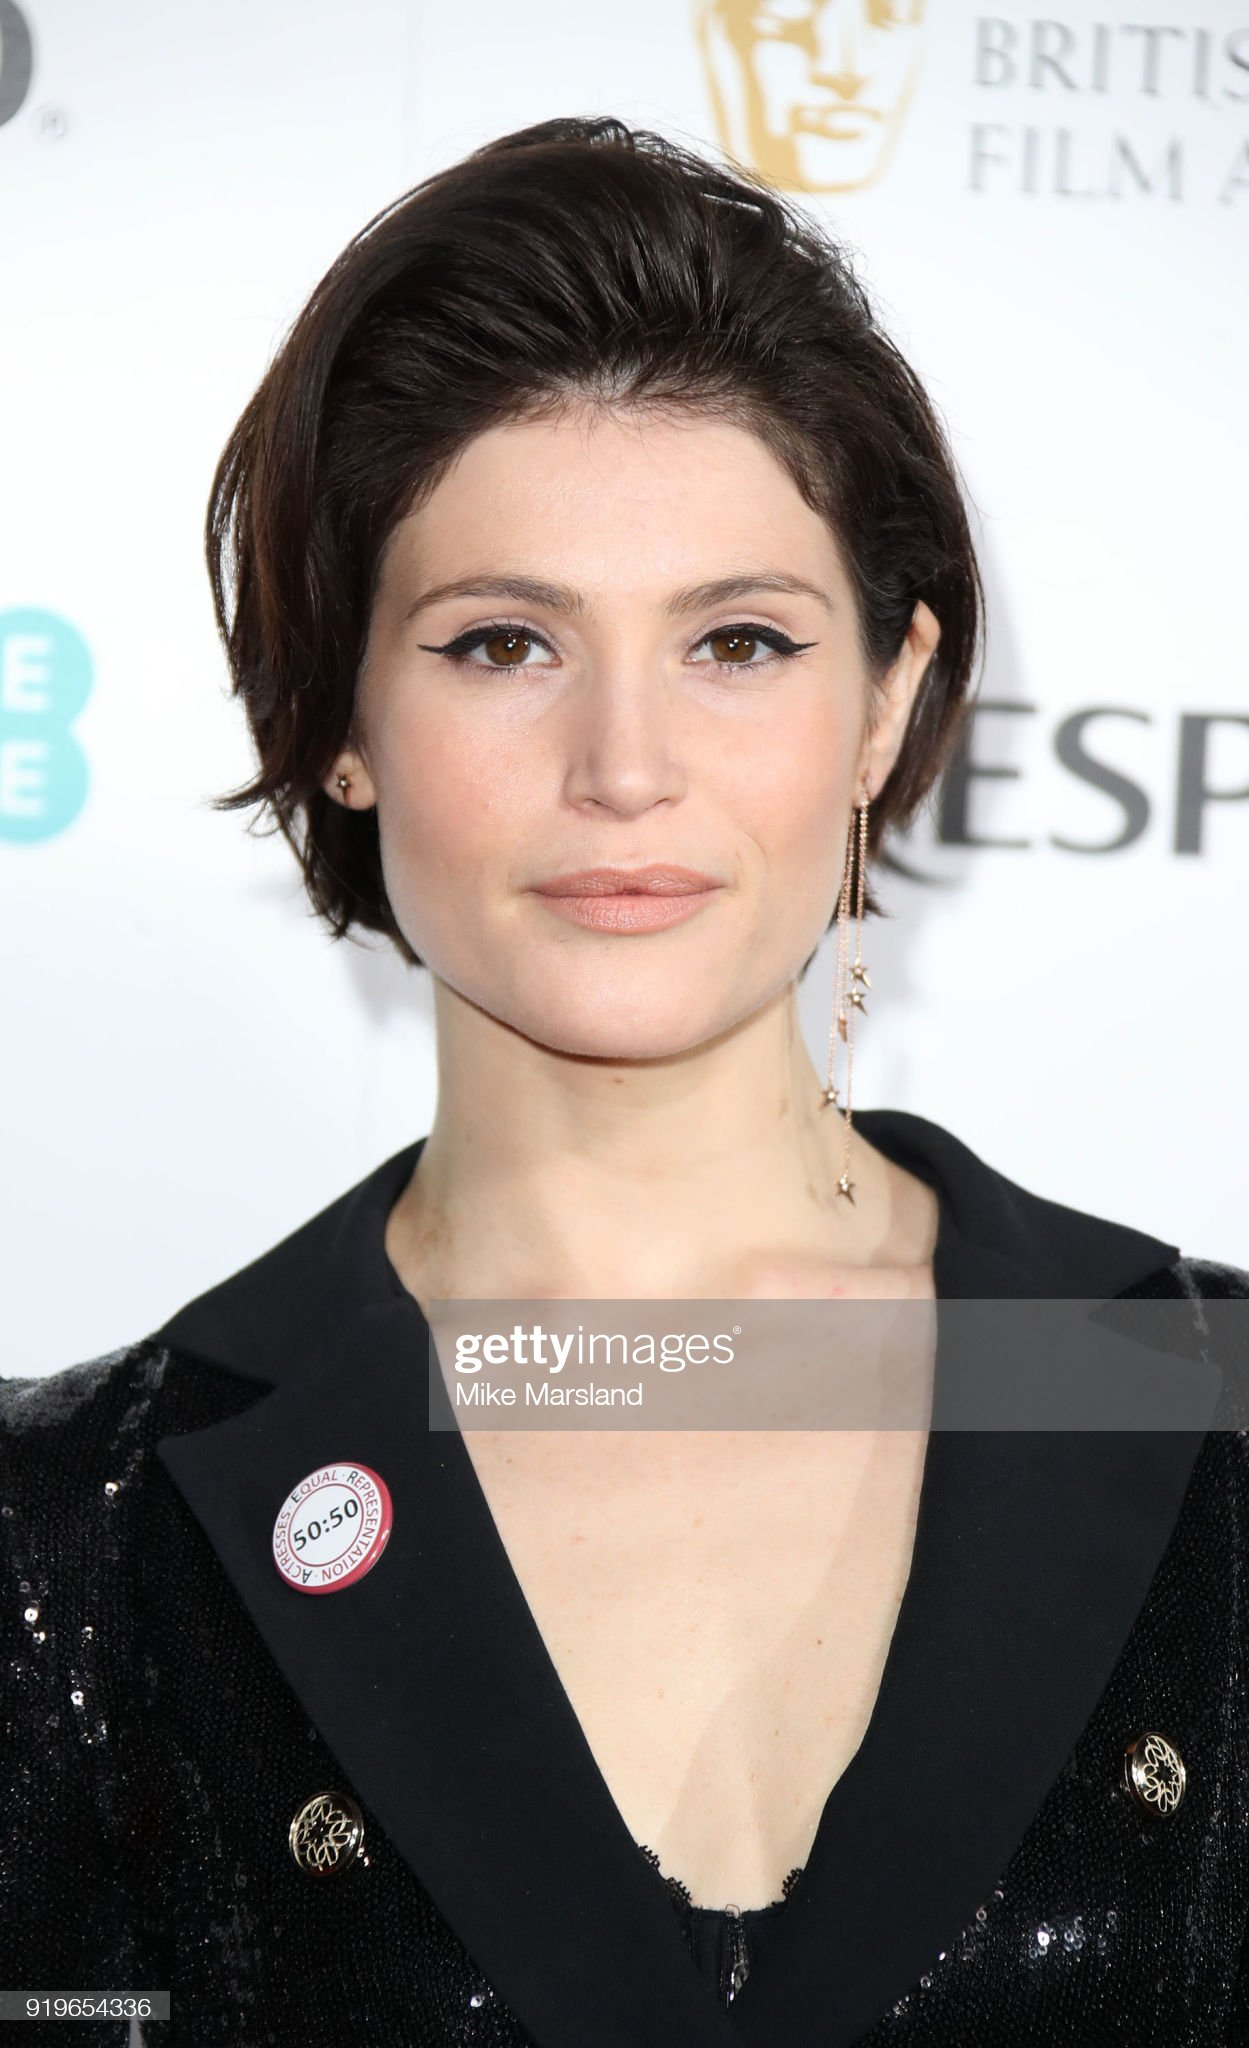 gemma-arterton-attends-the-ee-british-academy-film-awards-nominees-picture-id919654336